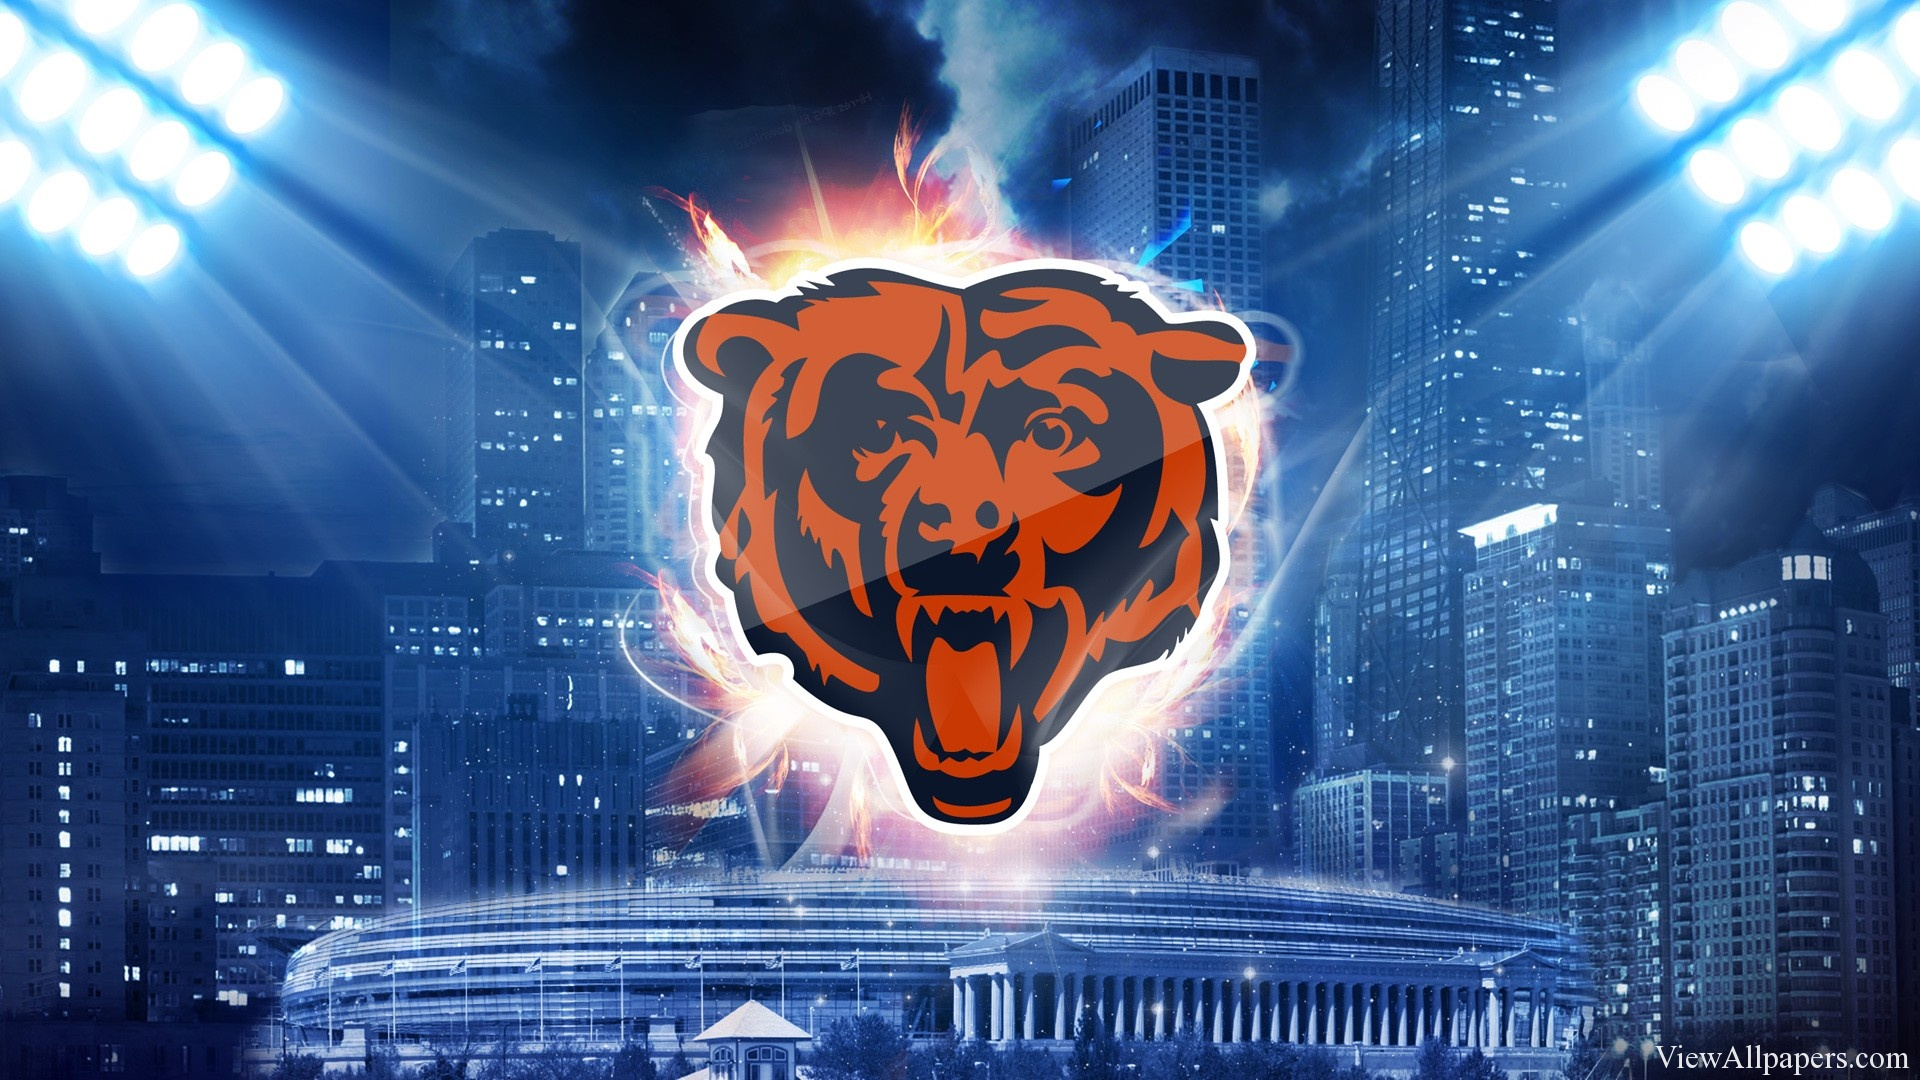 Chicago Bears Logo HD Wallpaper High Resolution download Chicago 1920x1080